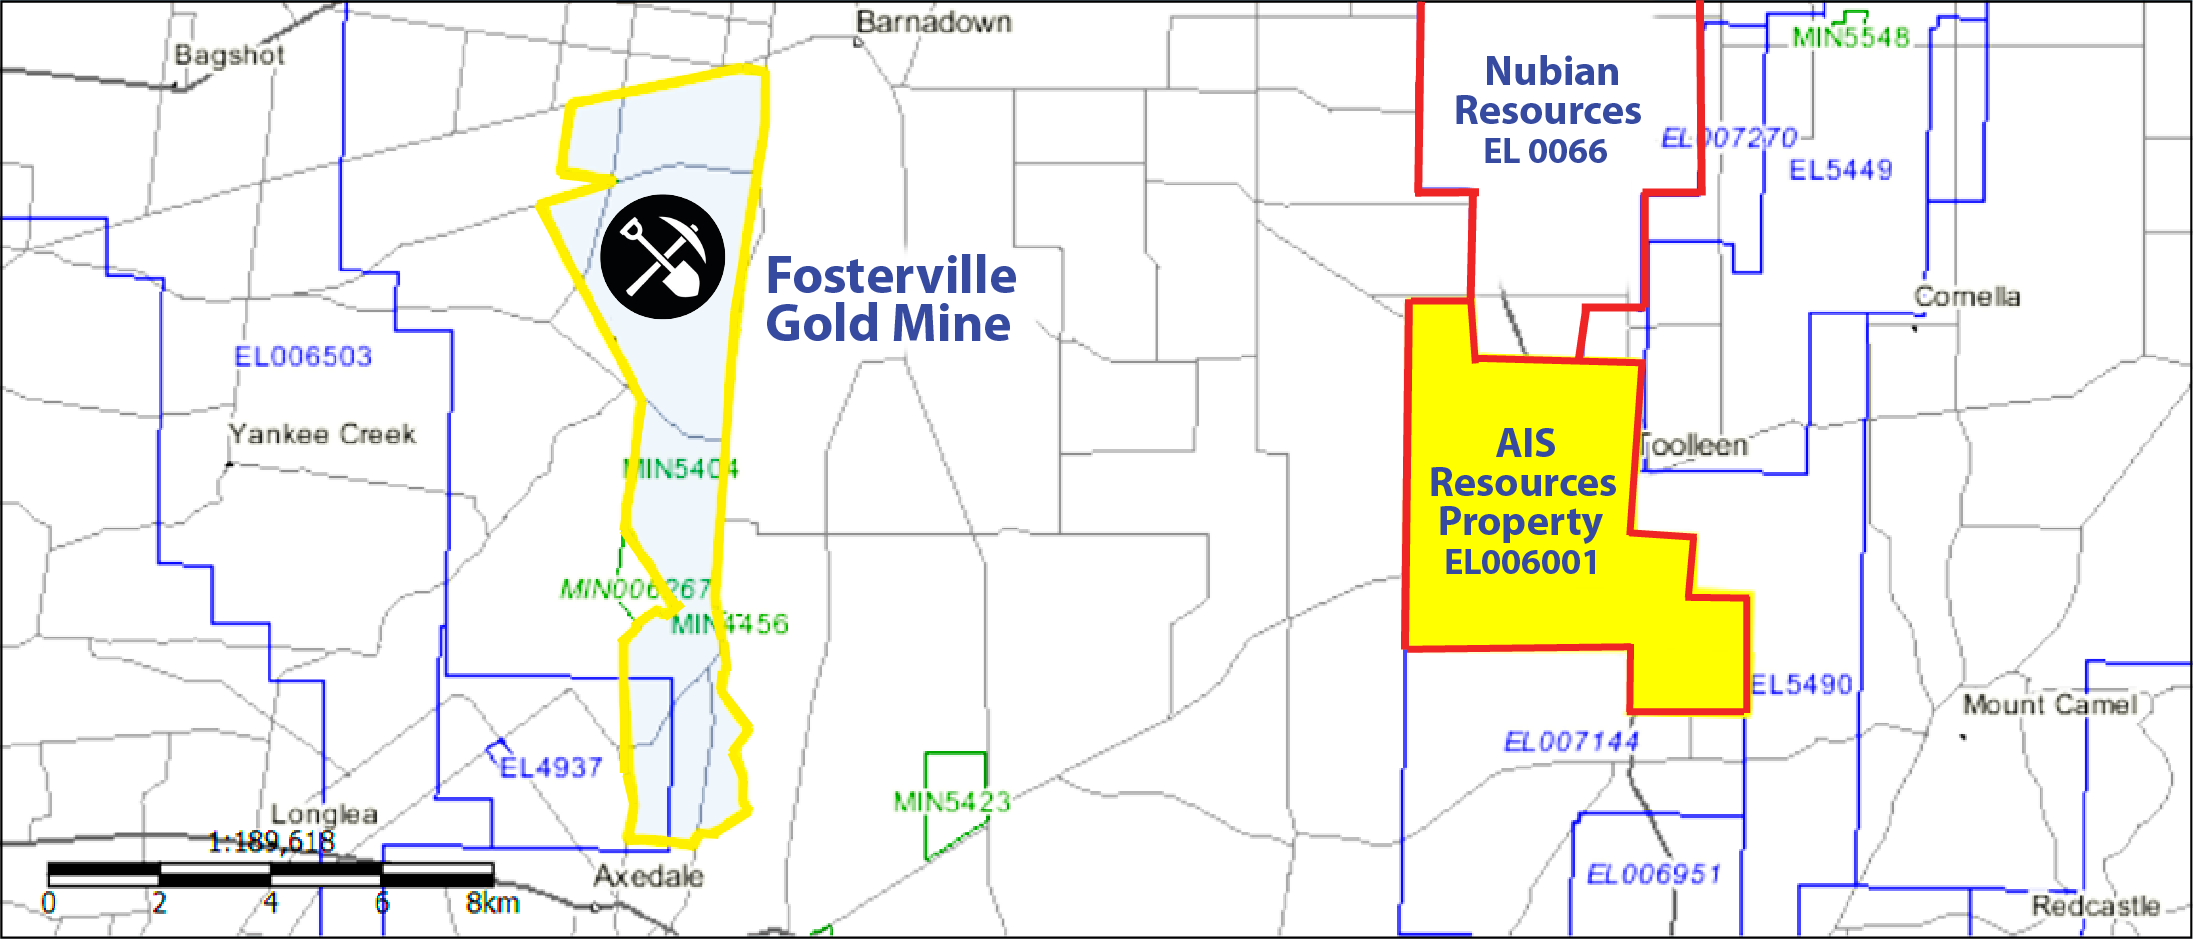 Fig-1-AIS-To-Acquire-Toolleen-Fosterville-Gold-Project